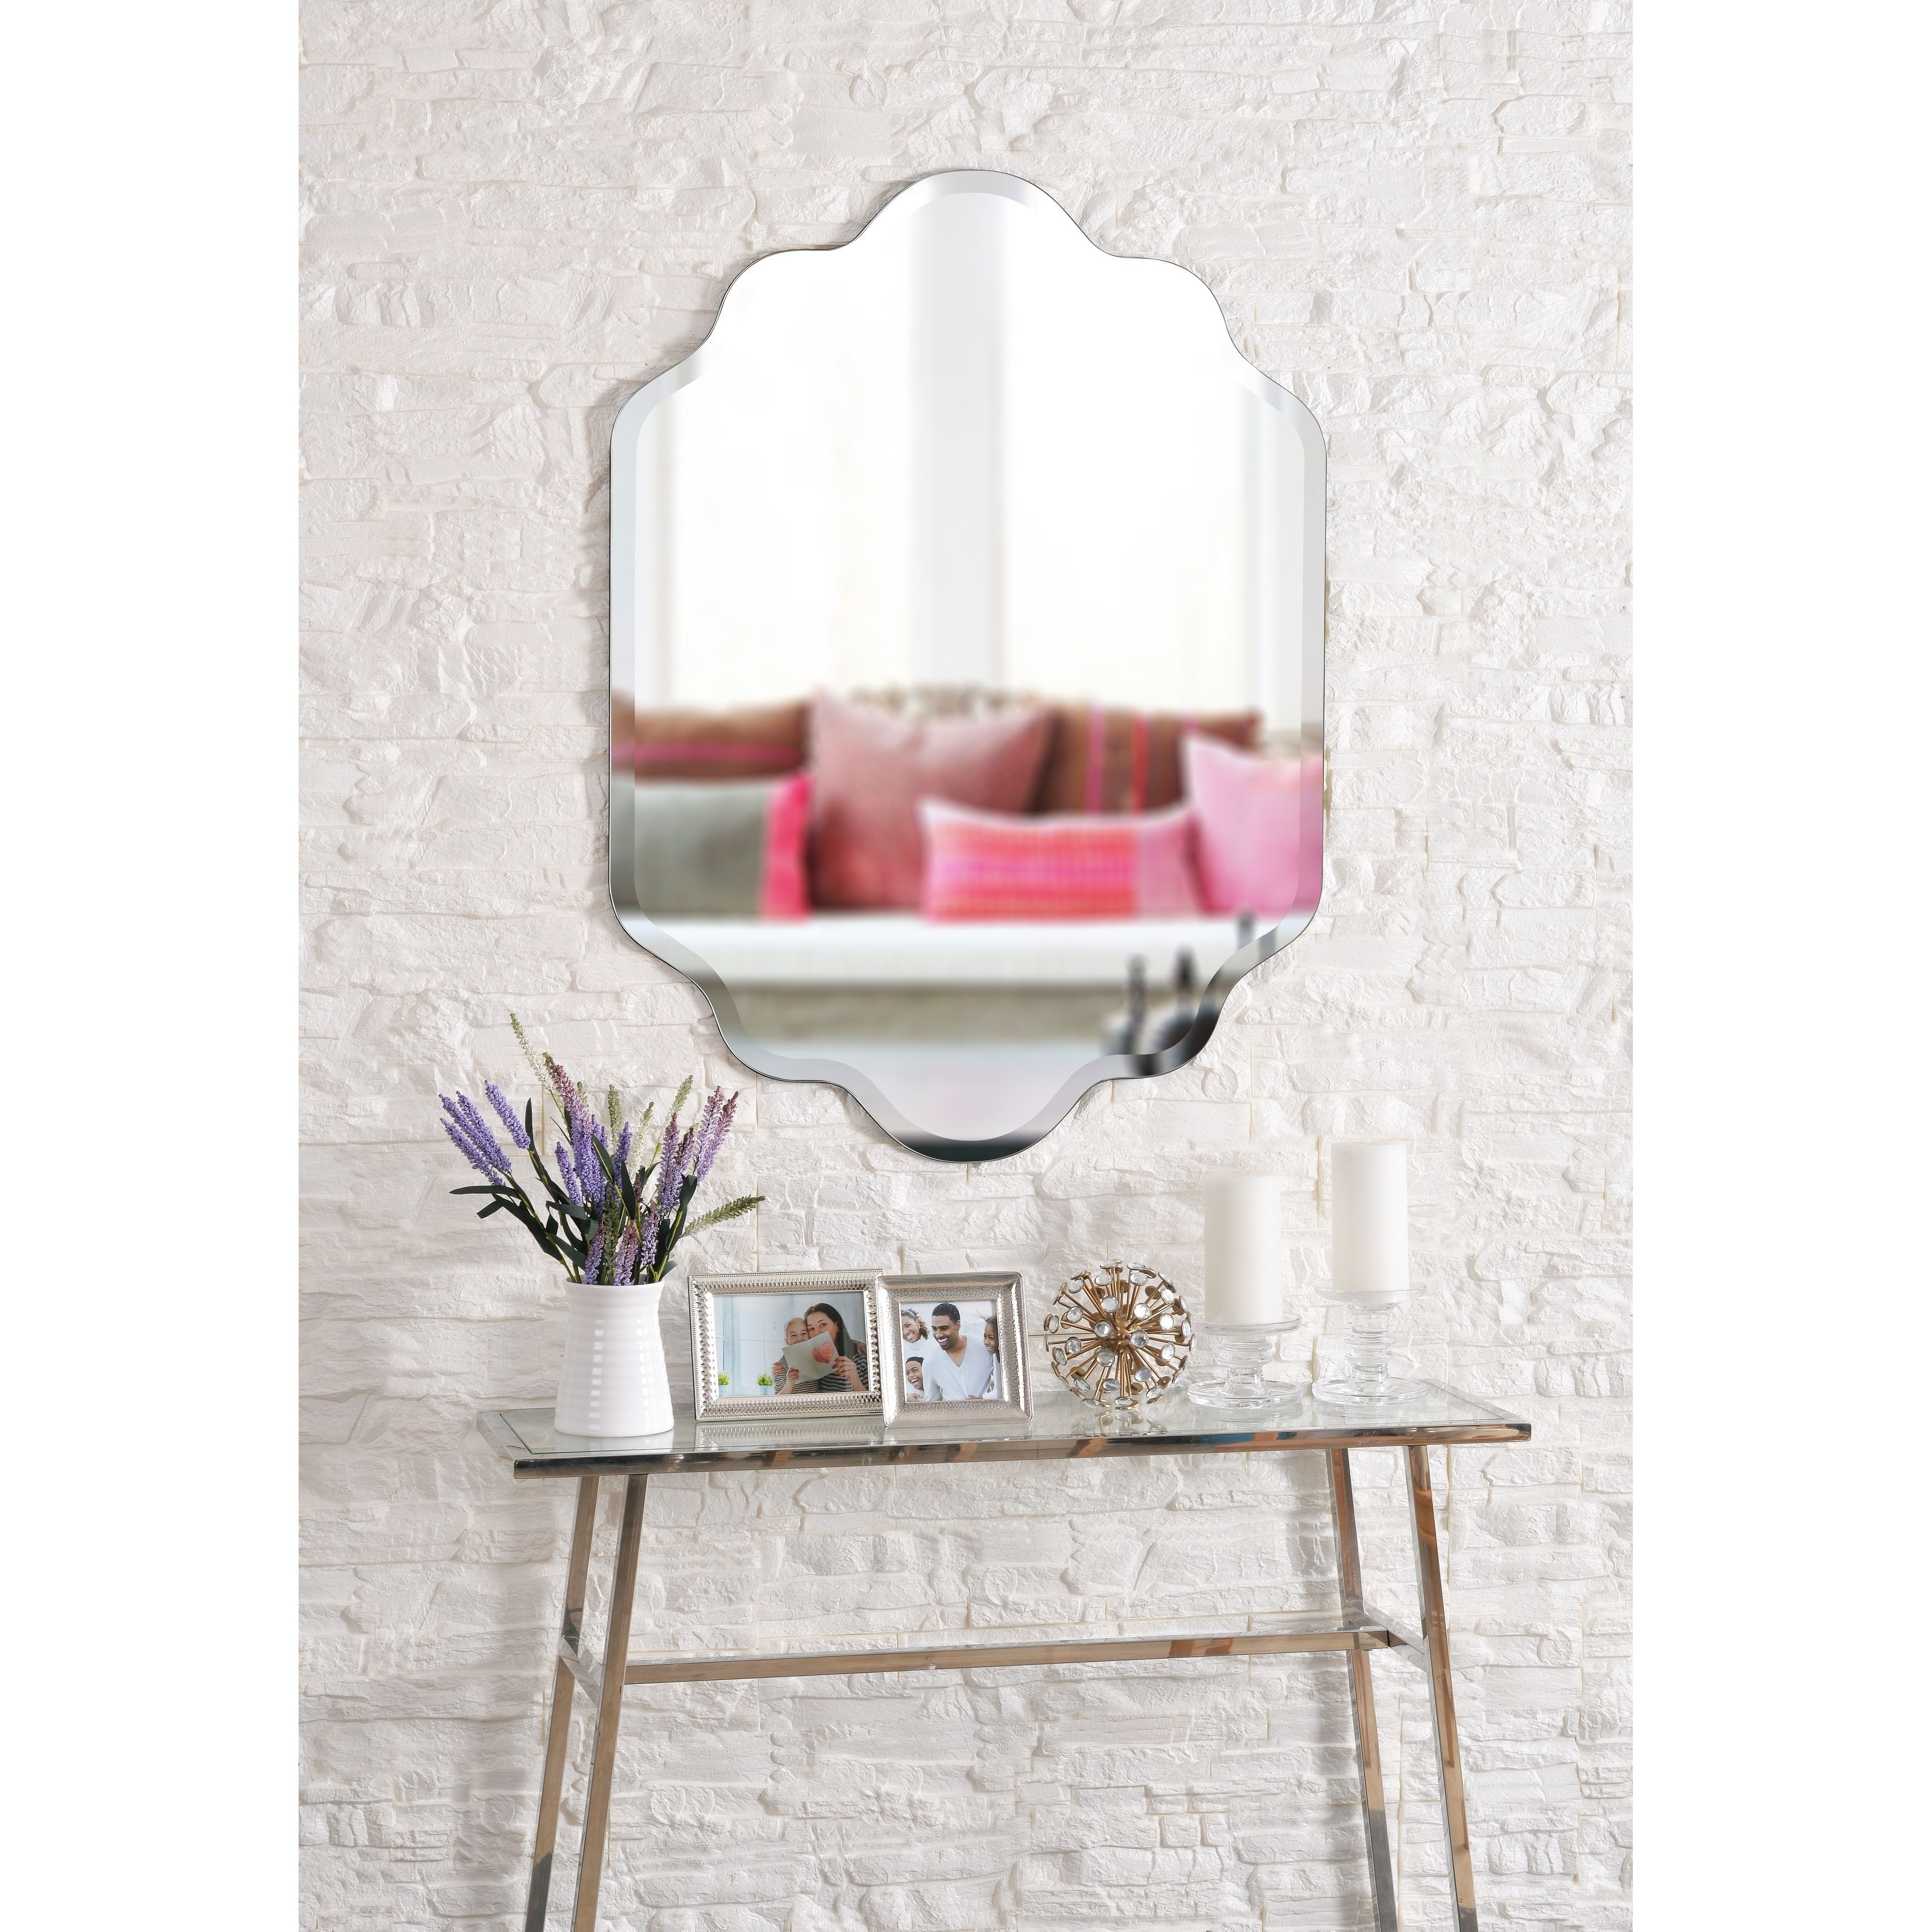 Phoebe 38-Inch Wall Mirror, Brown, Design Craft, Coffee with regard to Dariel Tall Arched Scalloped Wall Mirrors (Image 20 of 30)